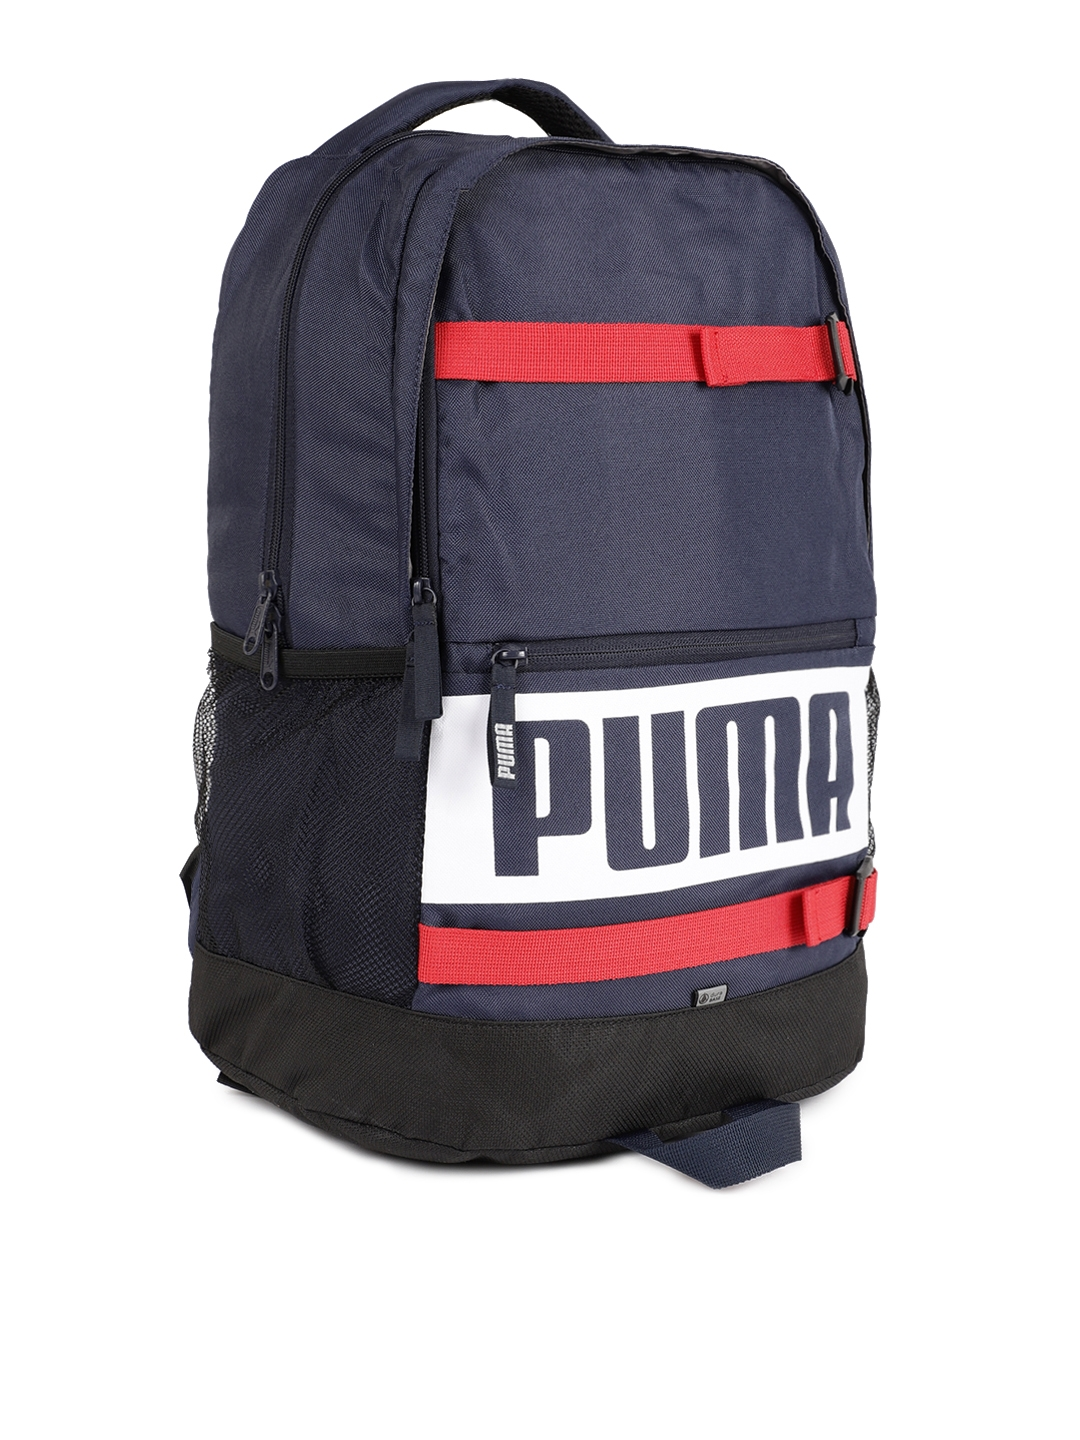 ad7f8b6831 Buy Puma Unisex Navy Blue Deck Laptop Backpack - Backpacks for ...